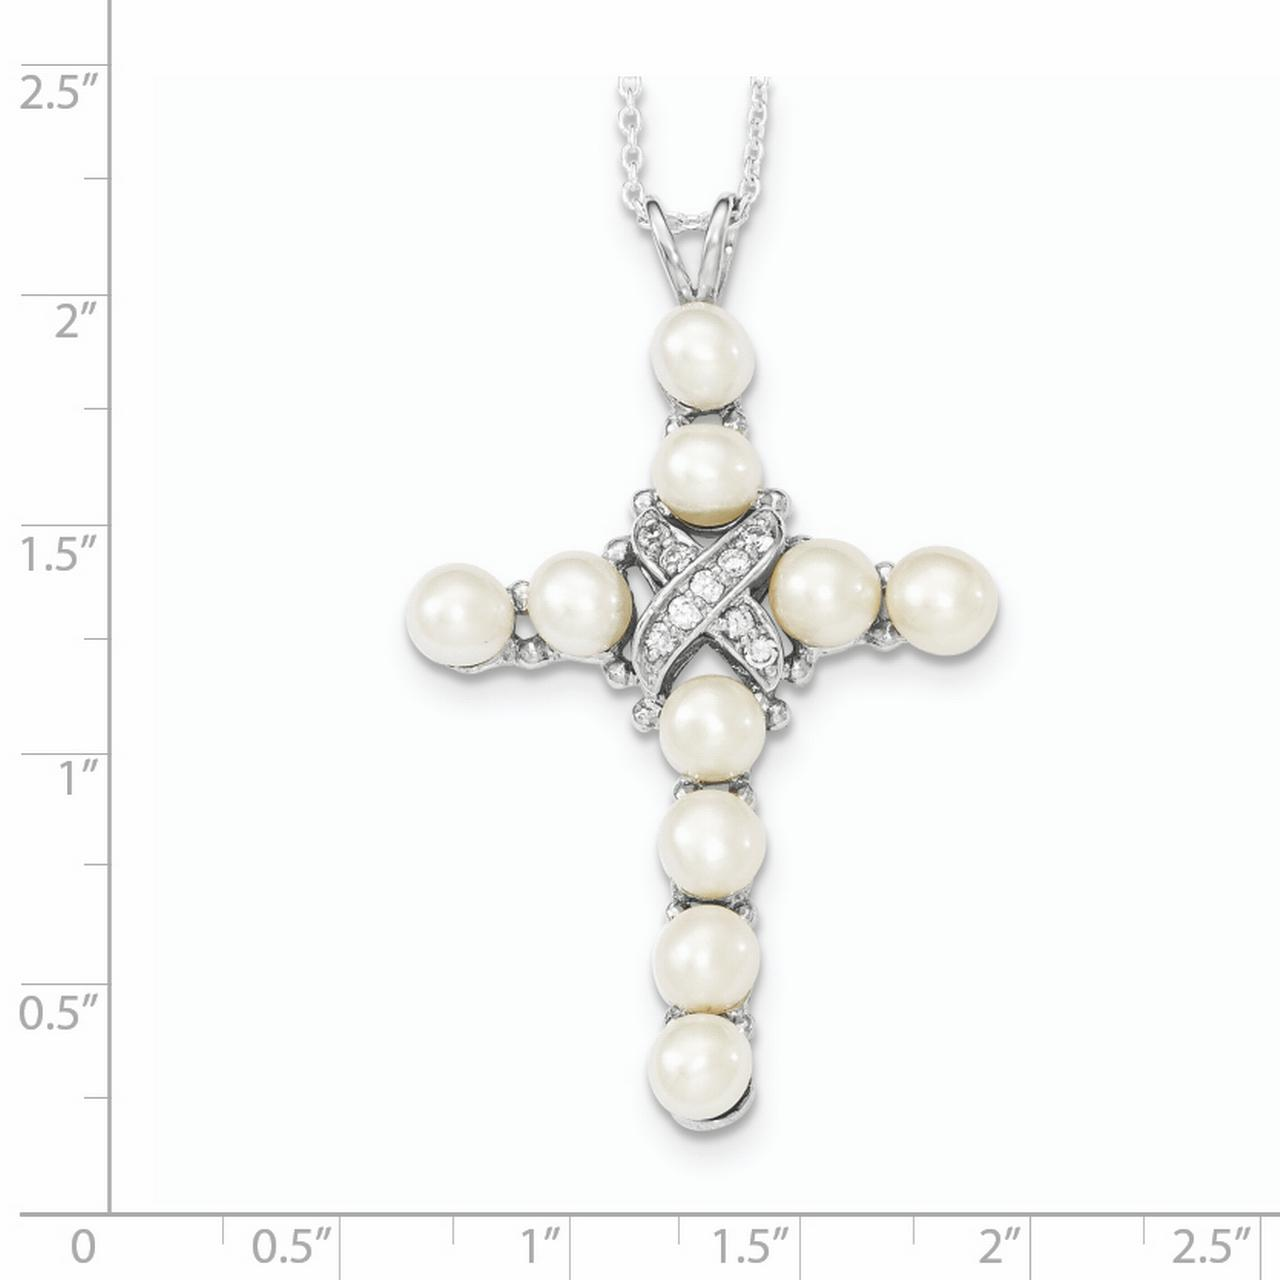 925 Sterling Silver Cubic Zirconia Cz Freshwater Cultured Pearl Cross Religious Chain Necklace Pendant Charm Fine Jewelry Gifts For Women For Her - image 1 de 3